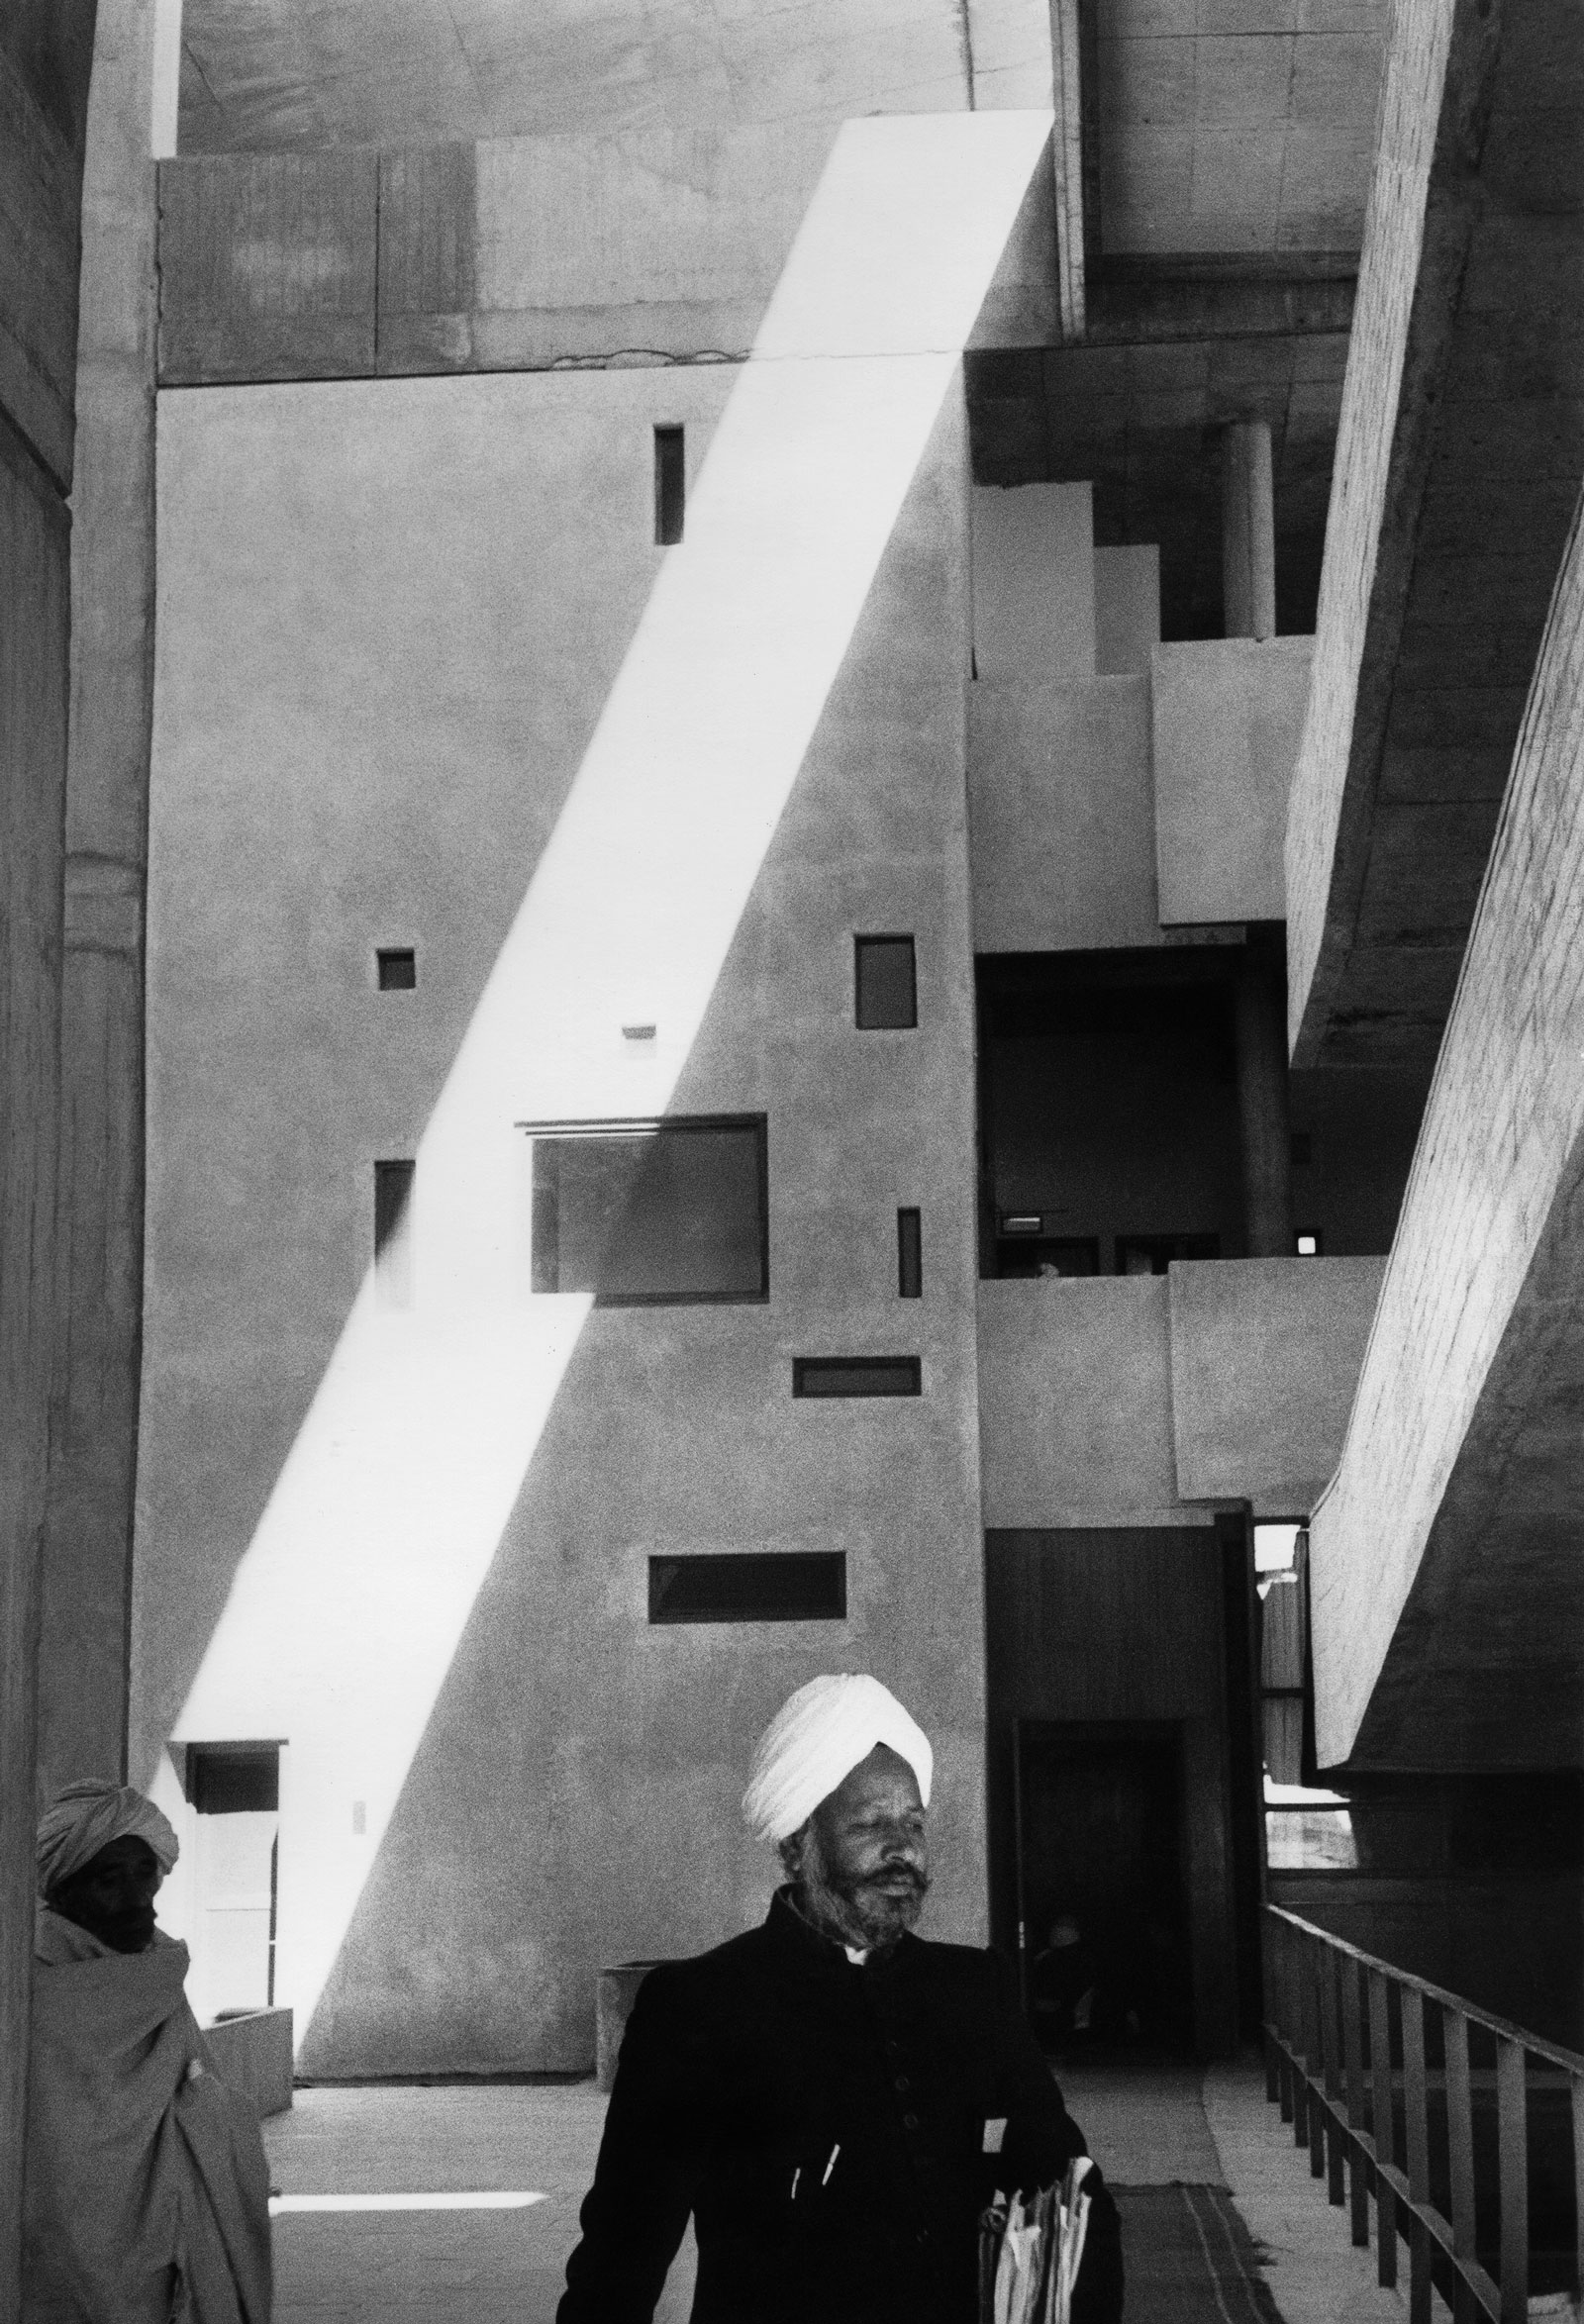 black and white shadows and geometries of the buildings in Chandigarh, with two figures include a man in a turban walking toward the camera